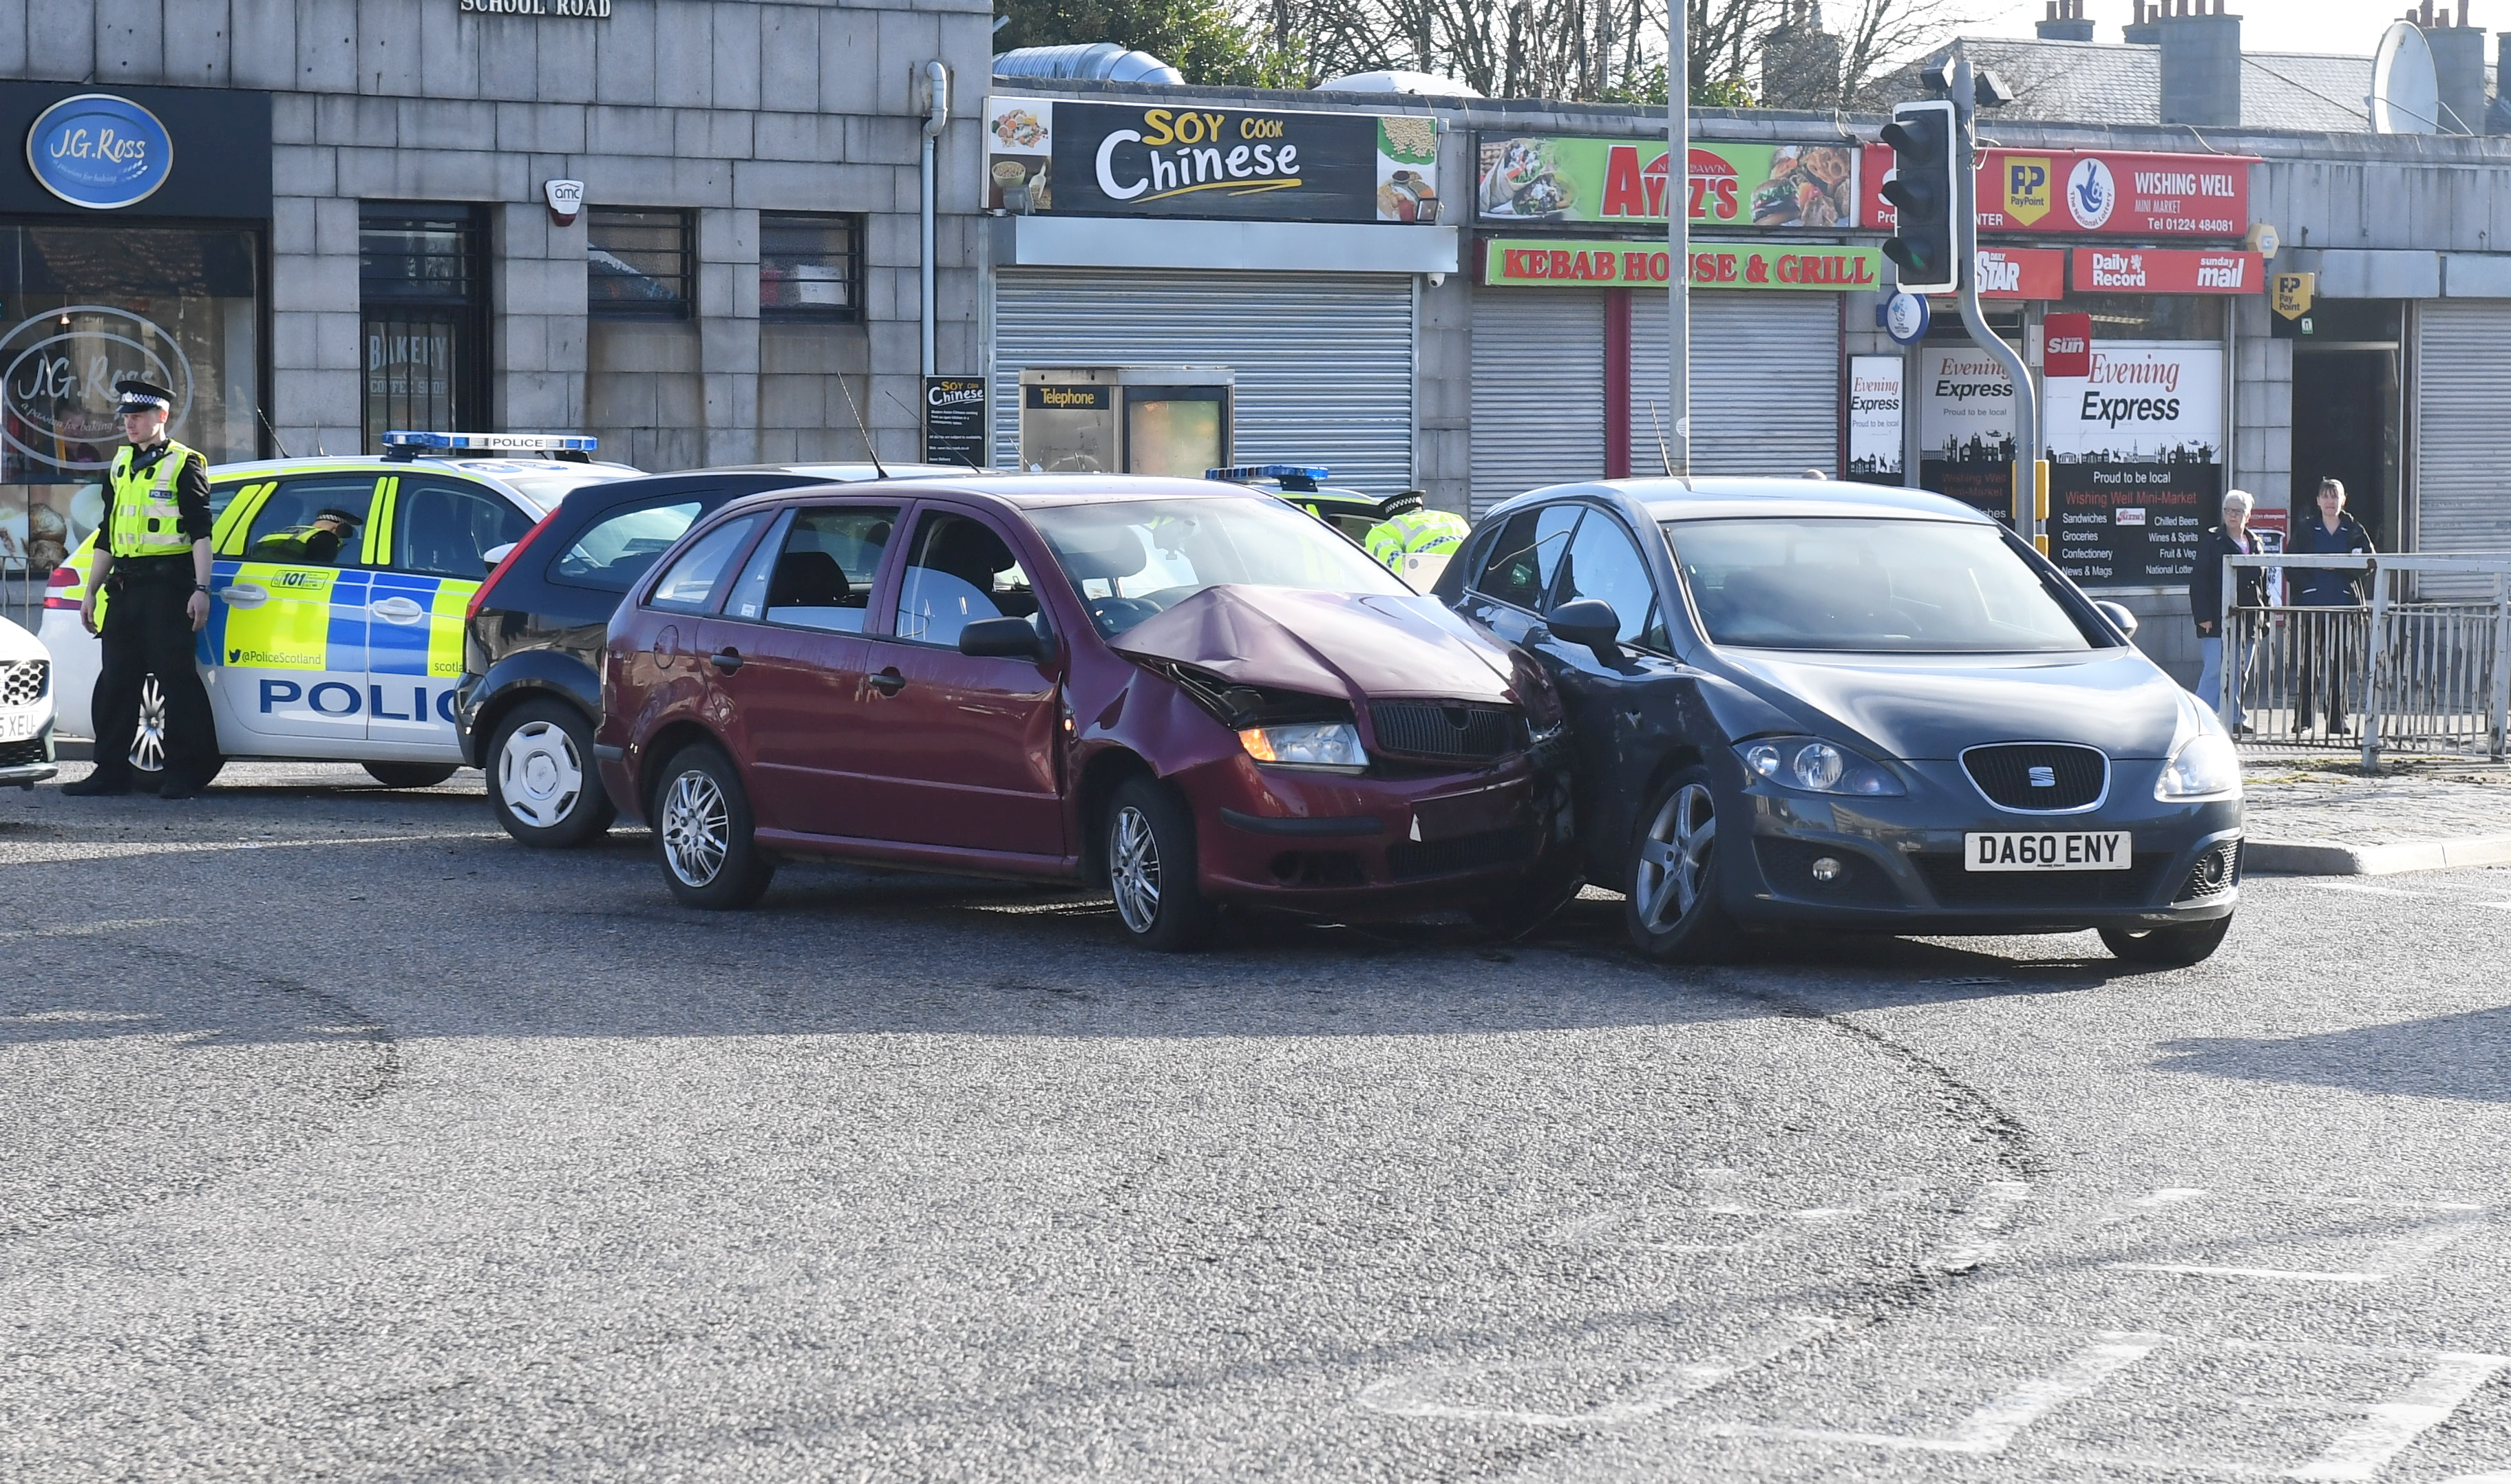 Motorists faced delays after the three-car crash at the St Machar roundabout.